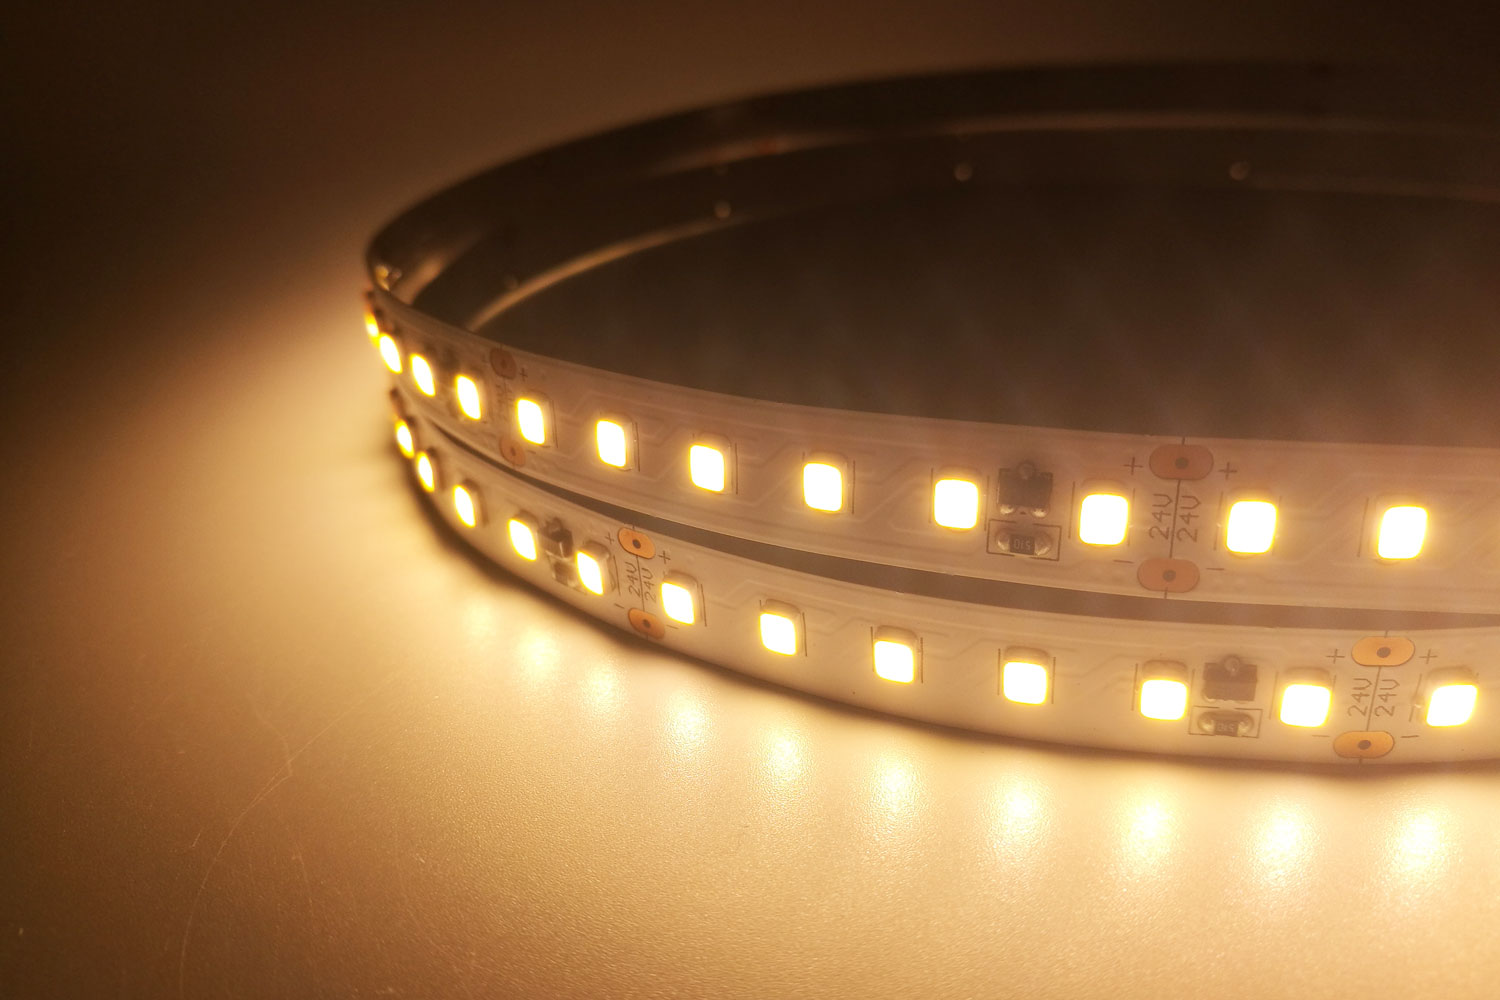 2835 24V Warm White Color Constant Current LED Strip Lights